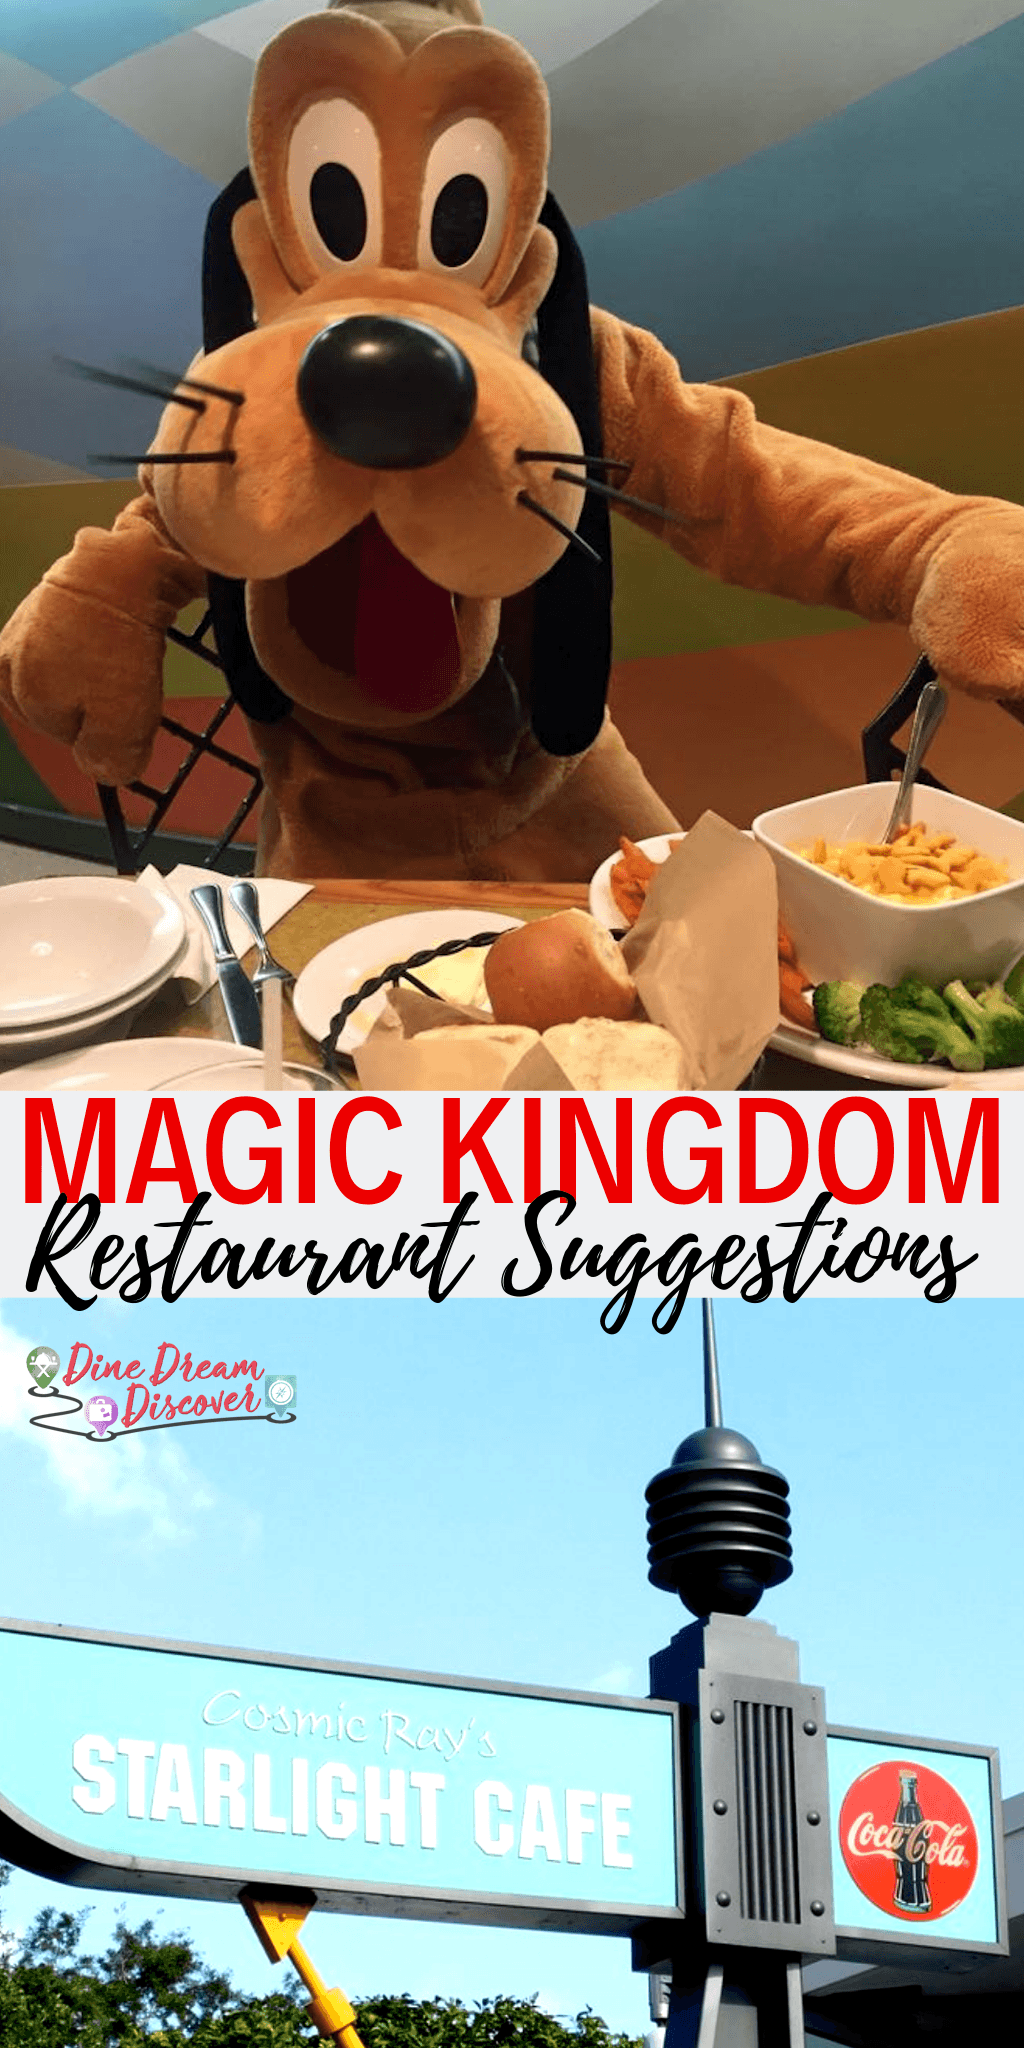 As you plan your Walt Disney World vacation, keep these Magic Kingdom restaurants in mind. Add the appropriate reservations to your park schedule.